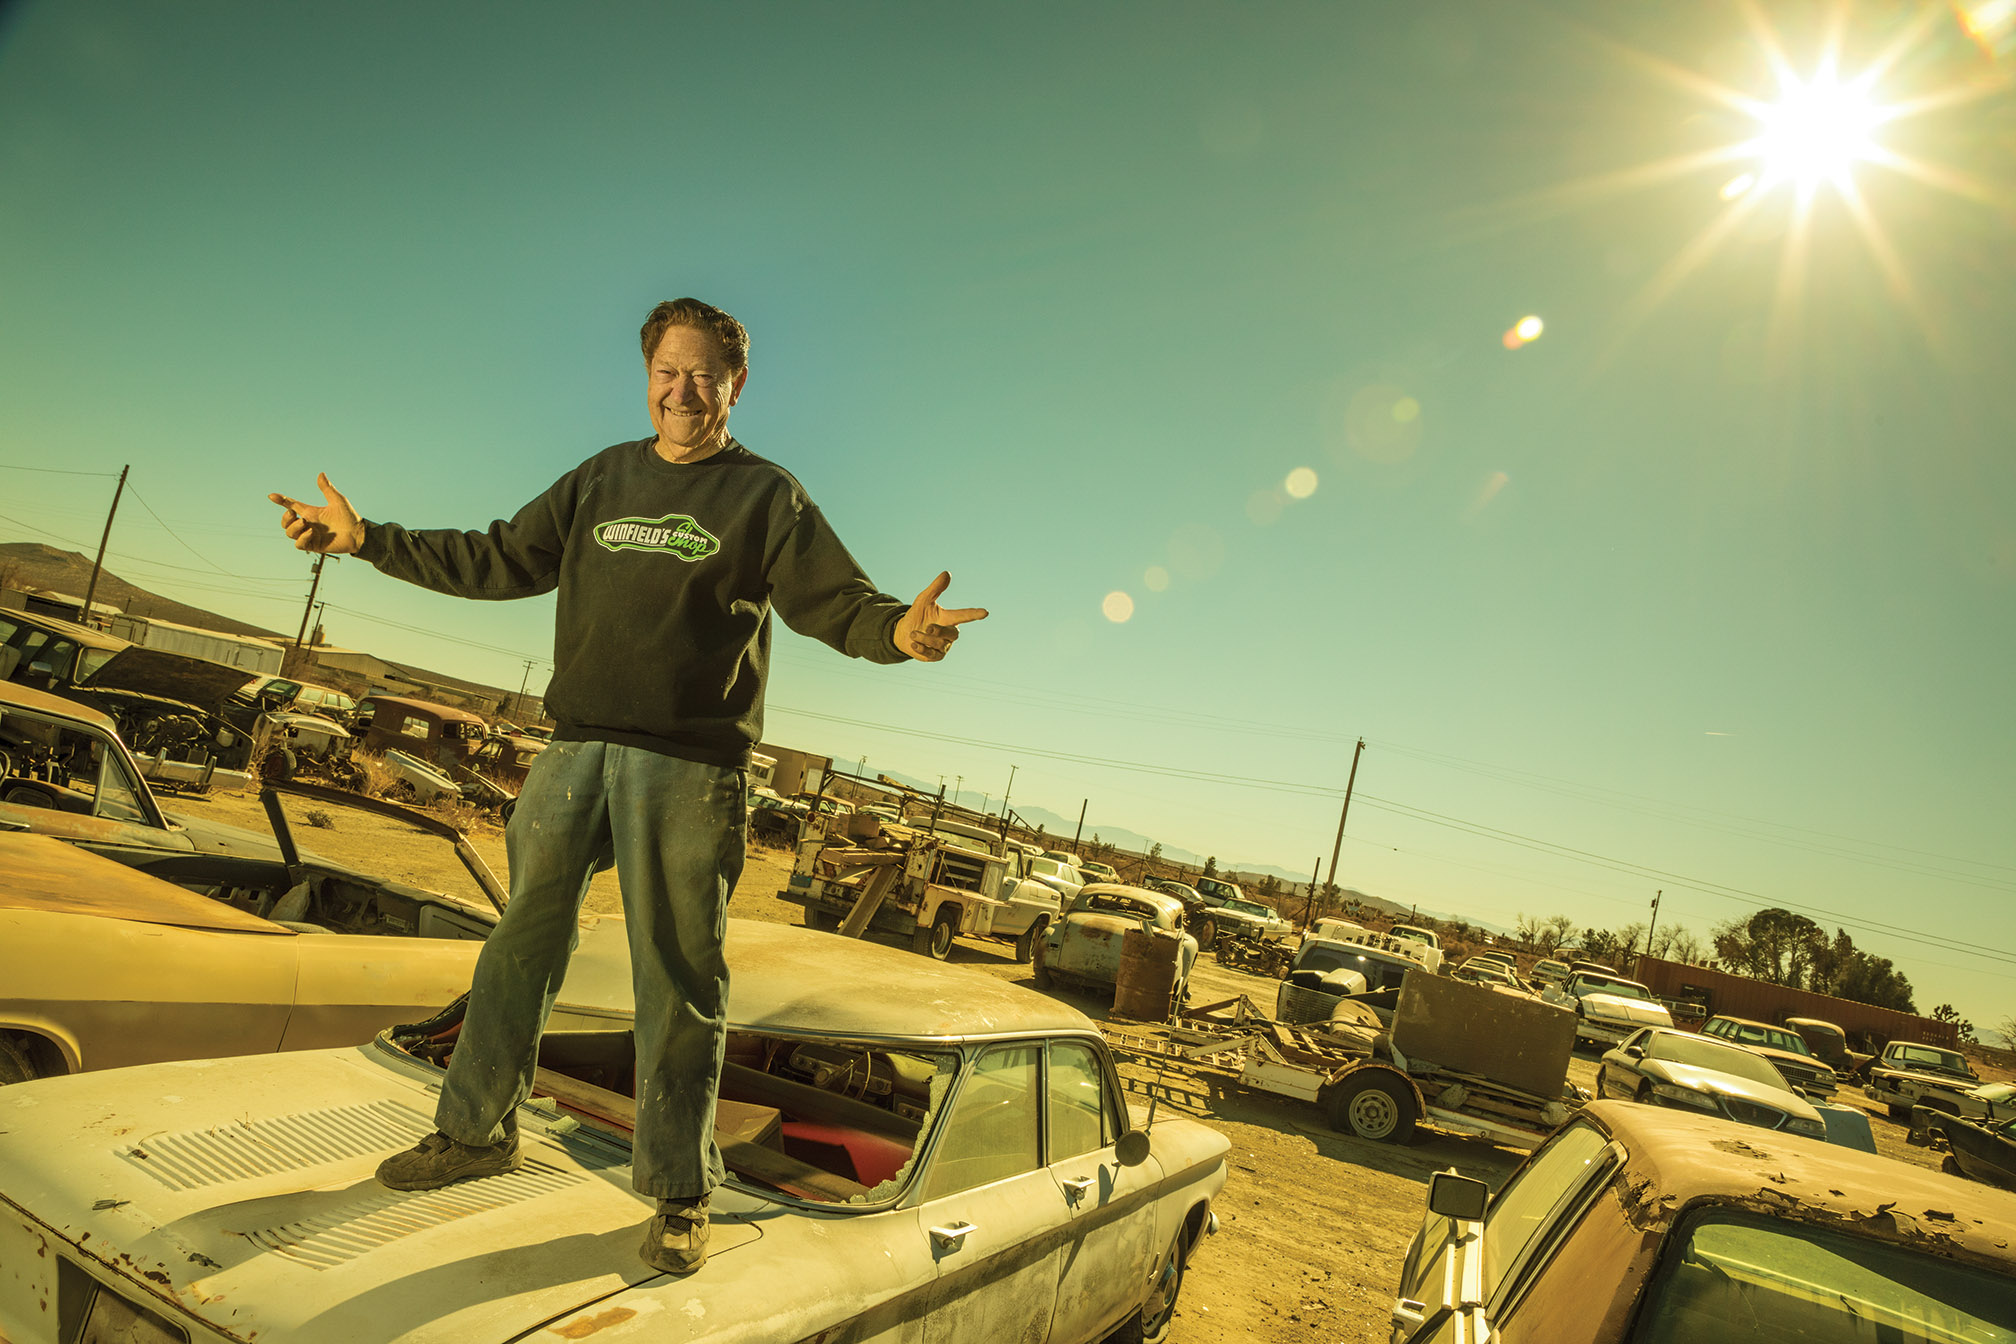 Gene Winfield reigns over his arid dominion, which was once a five-acre wrecking yard.